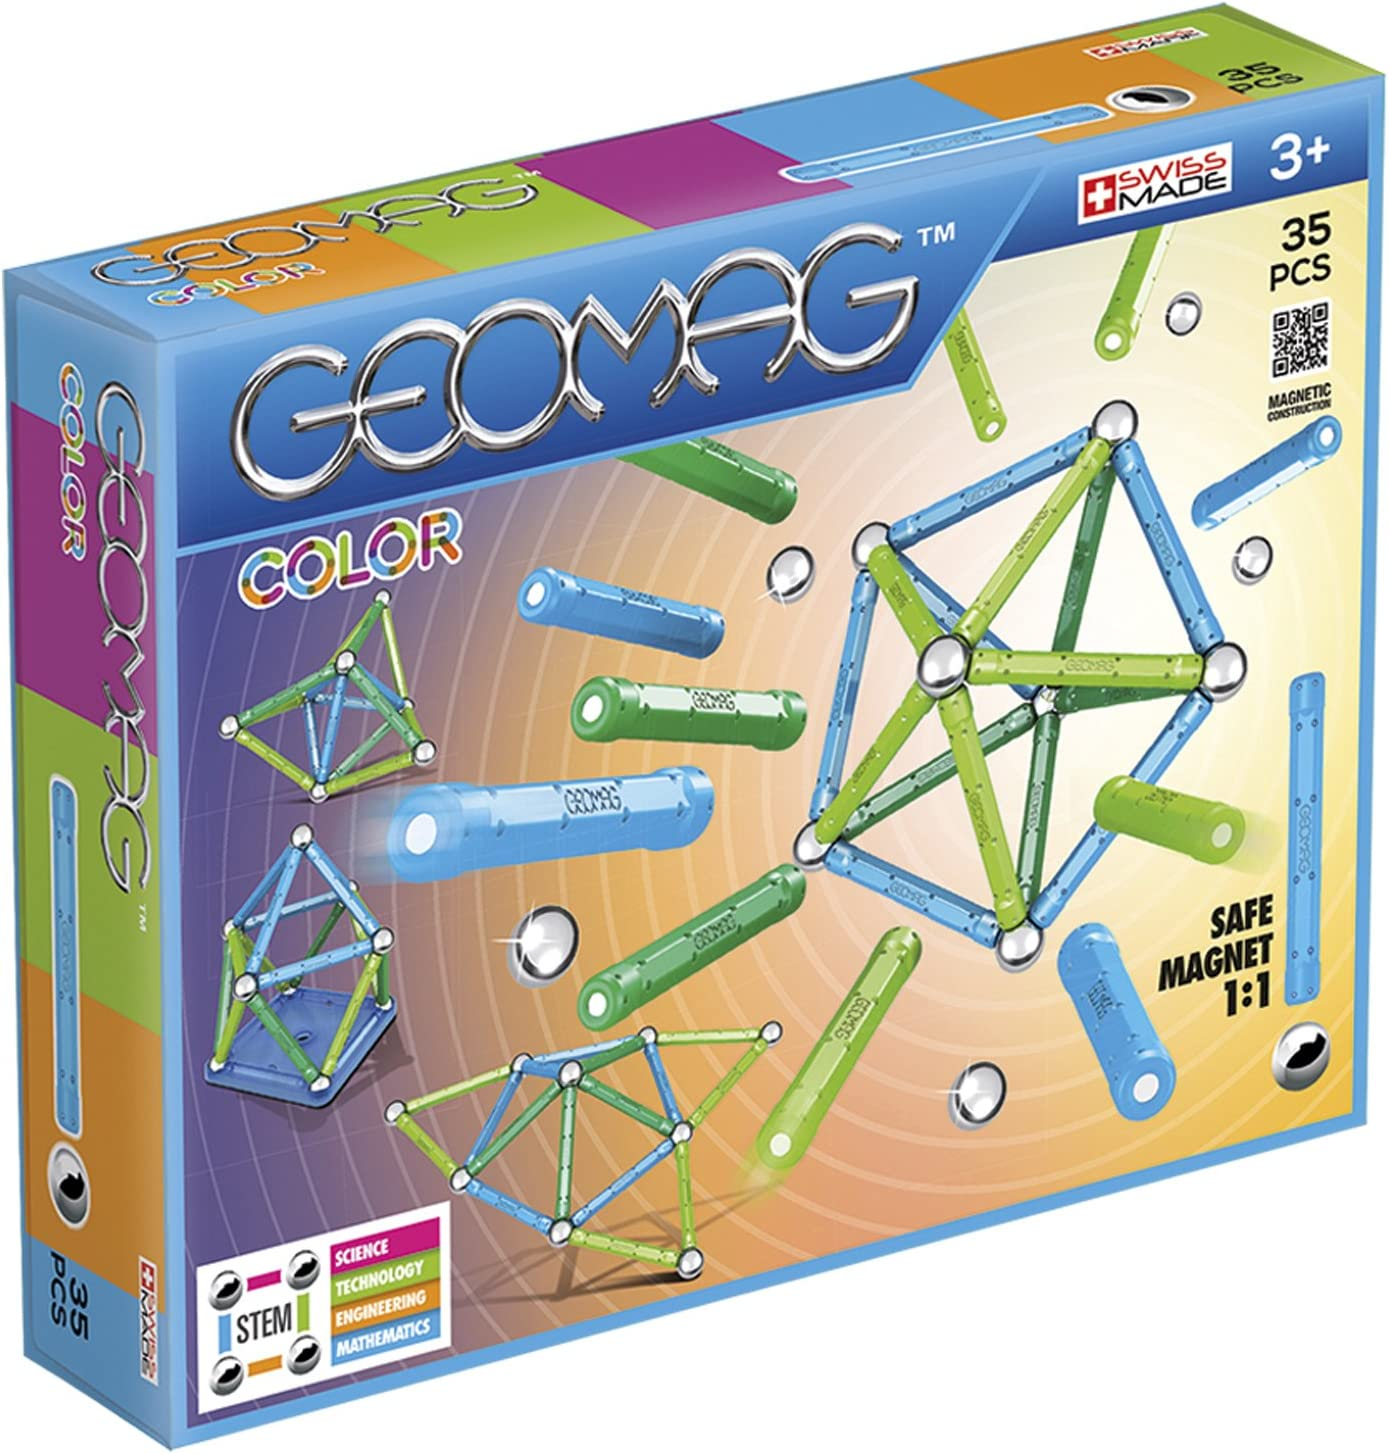 Wholesale Geomag - COLOR National uniform free shipping 35-Piece Magnetic Set STEM Certified Building